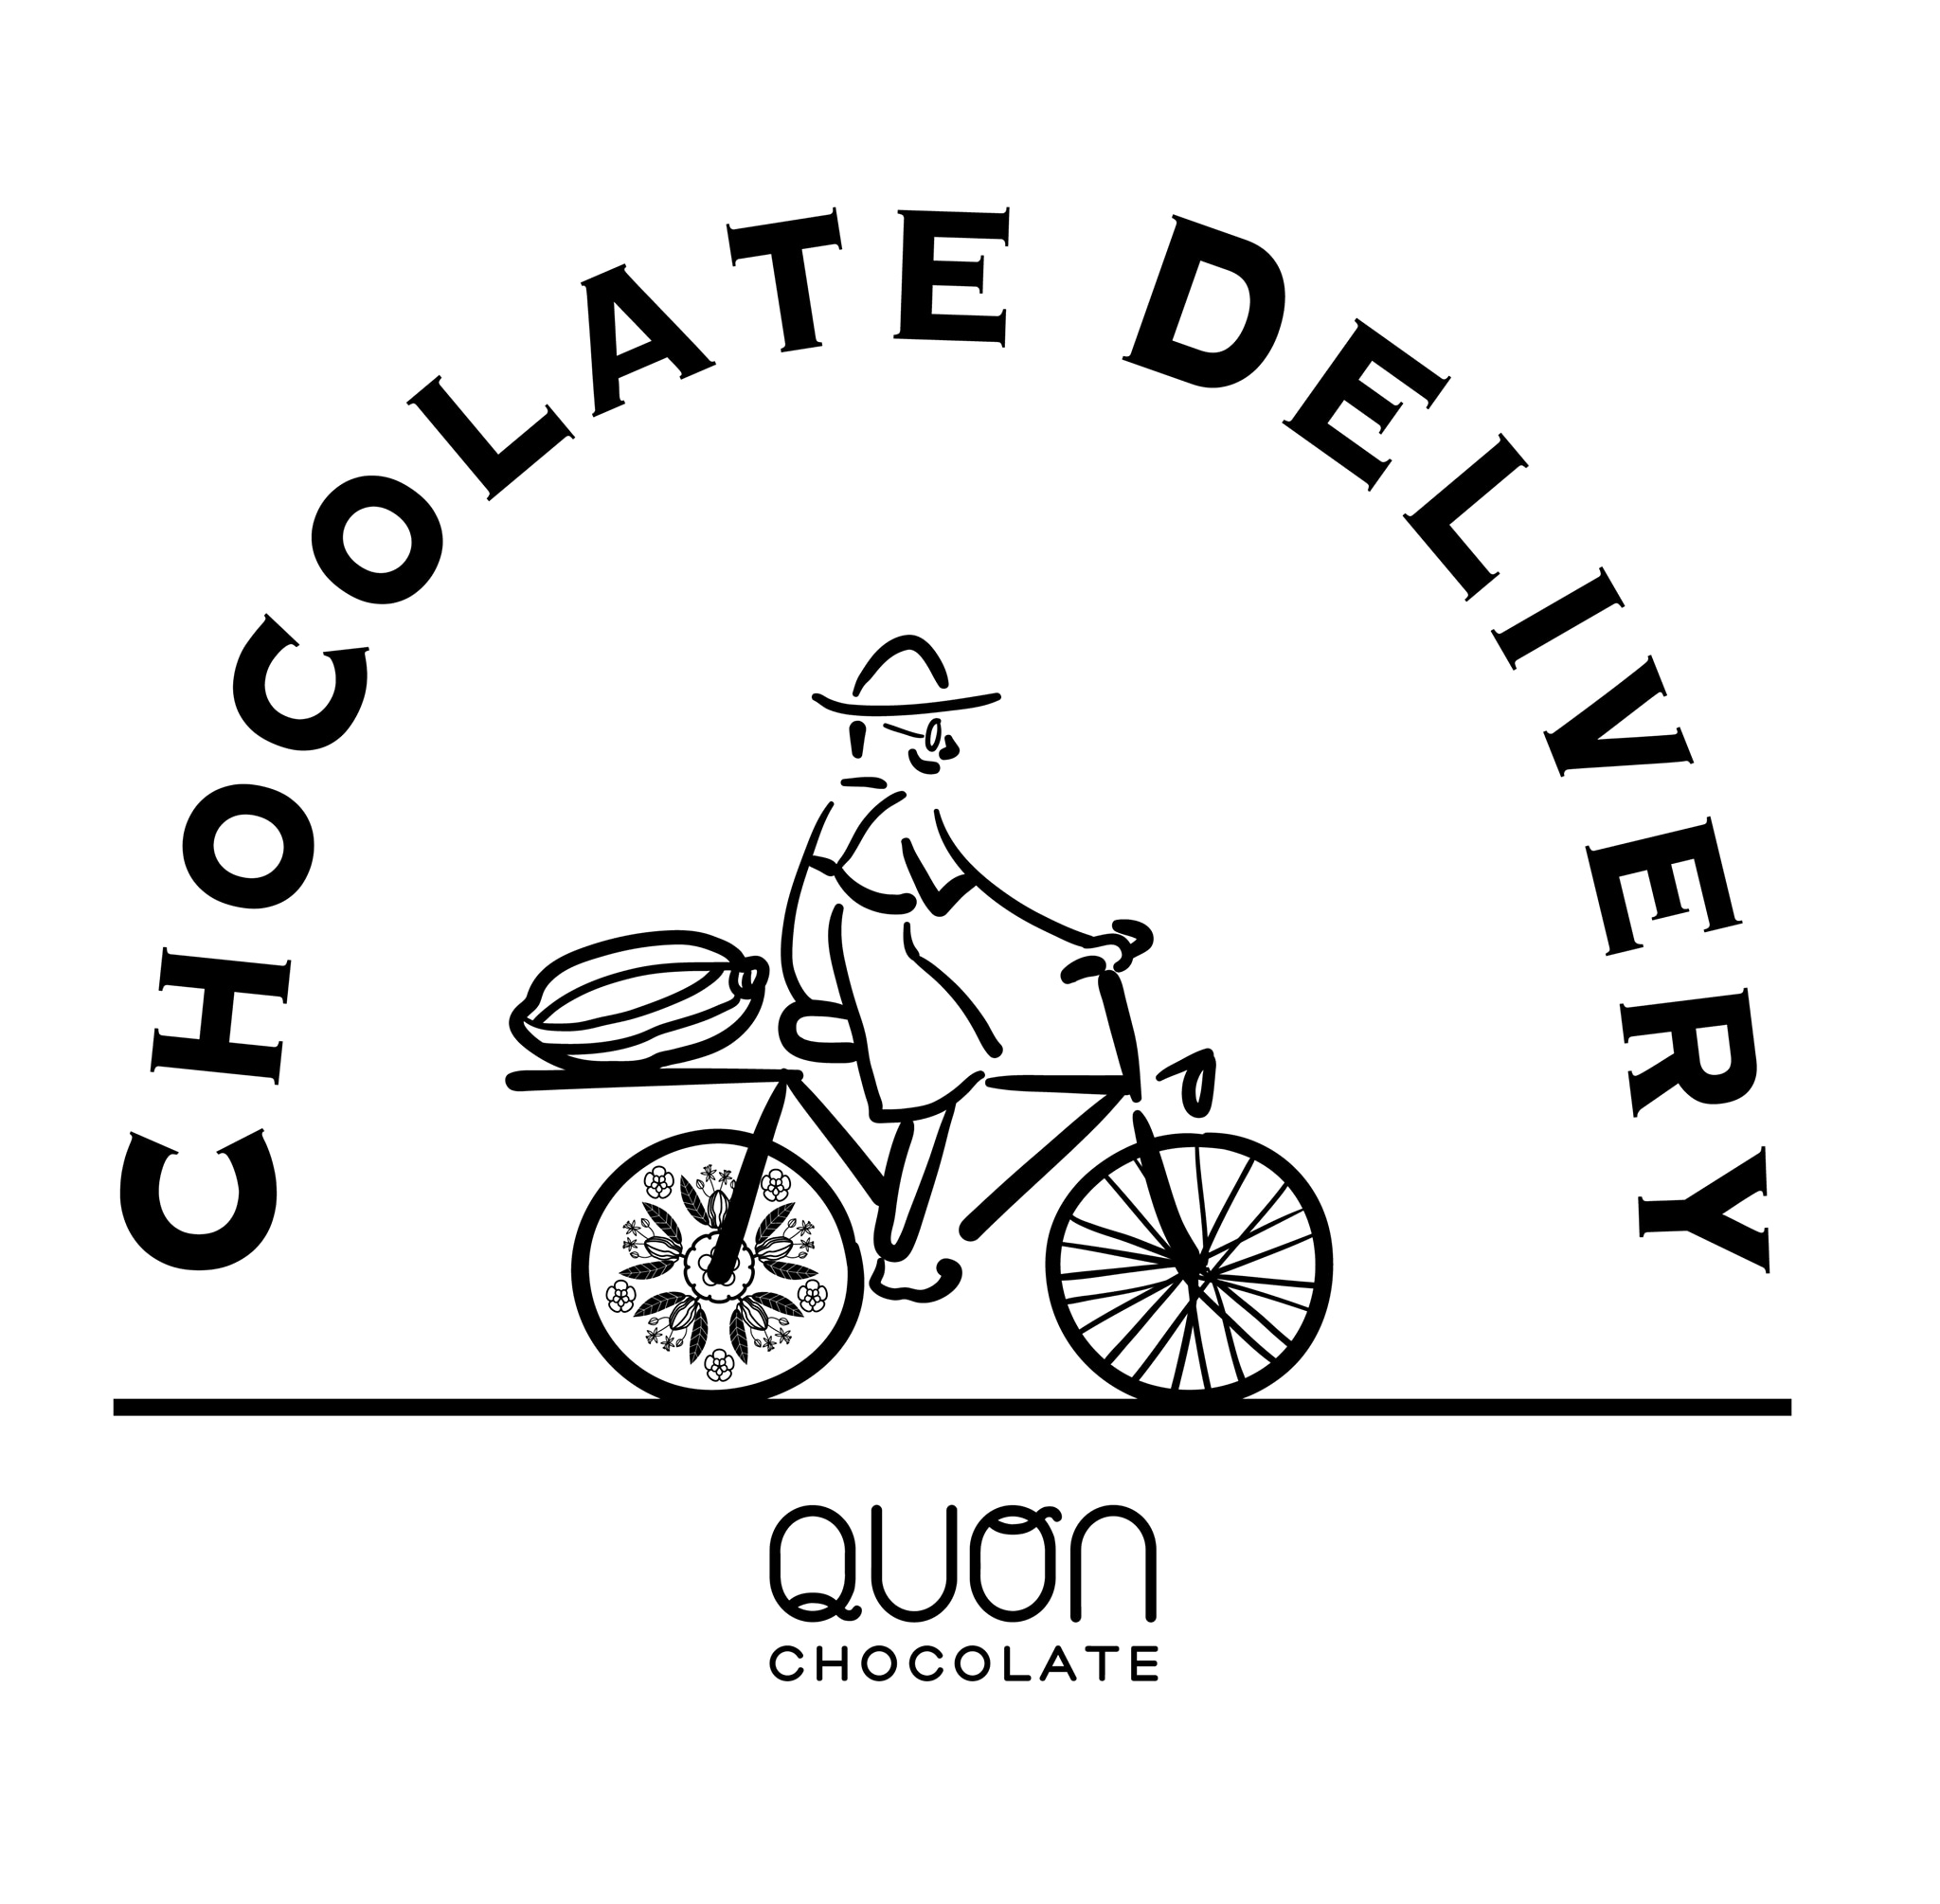 QUONチョコレート 横浜店